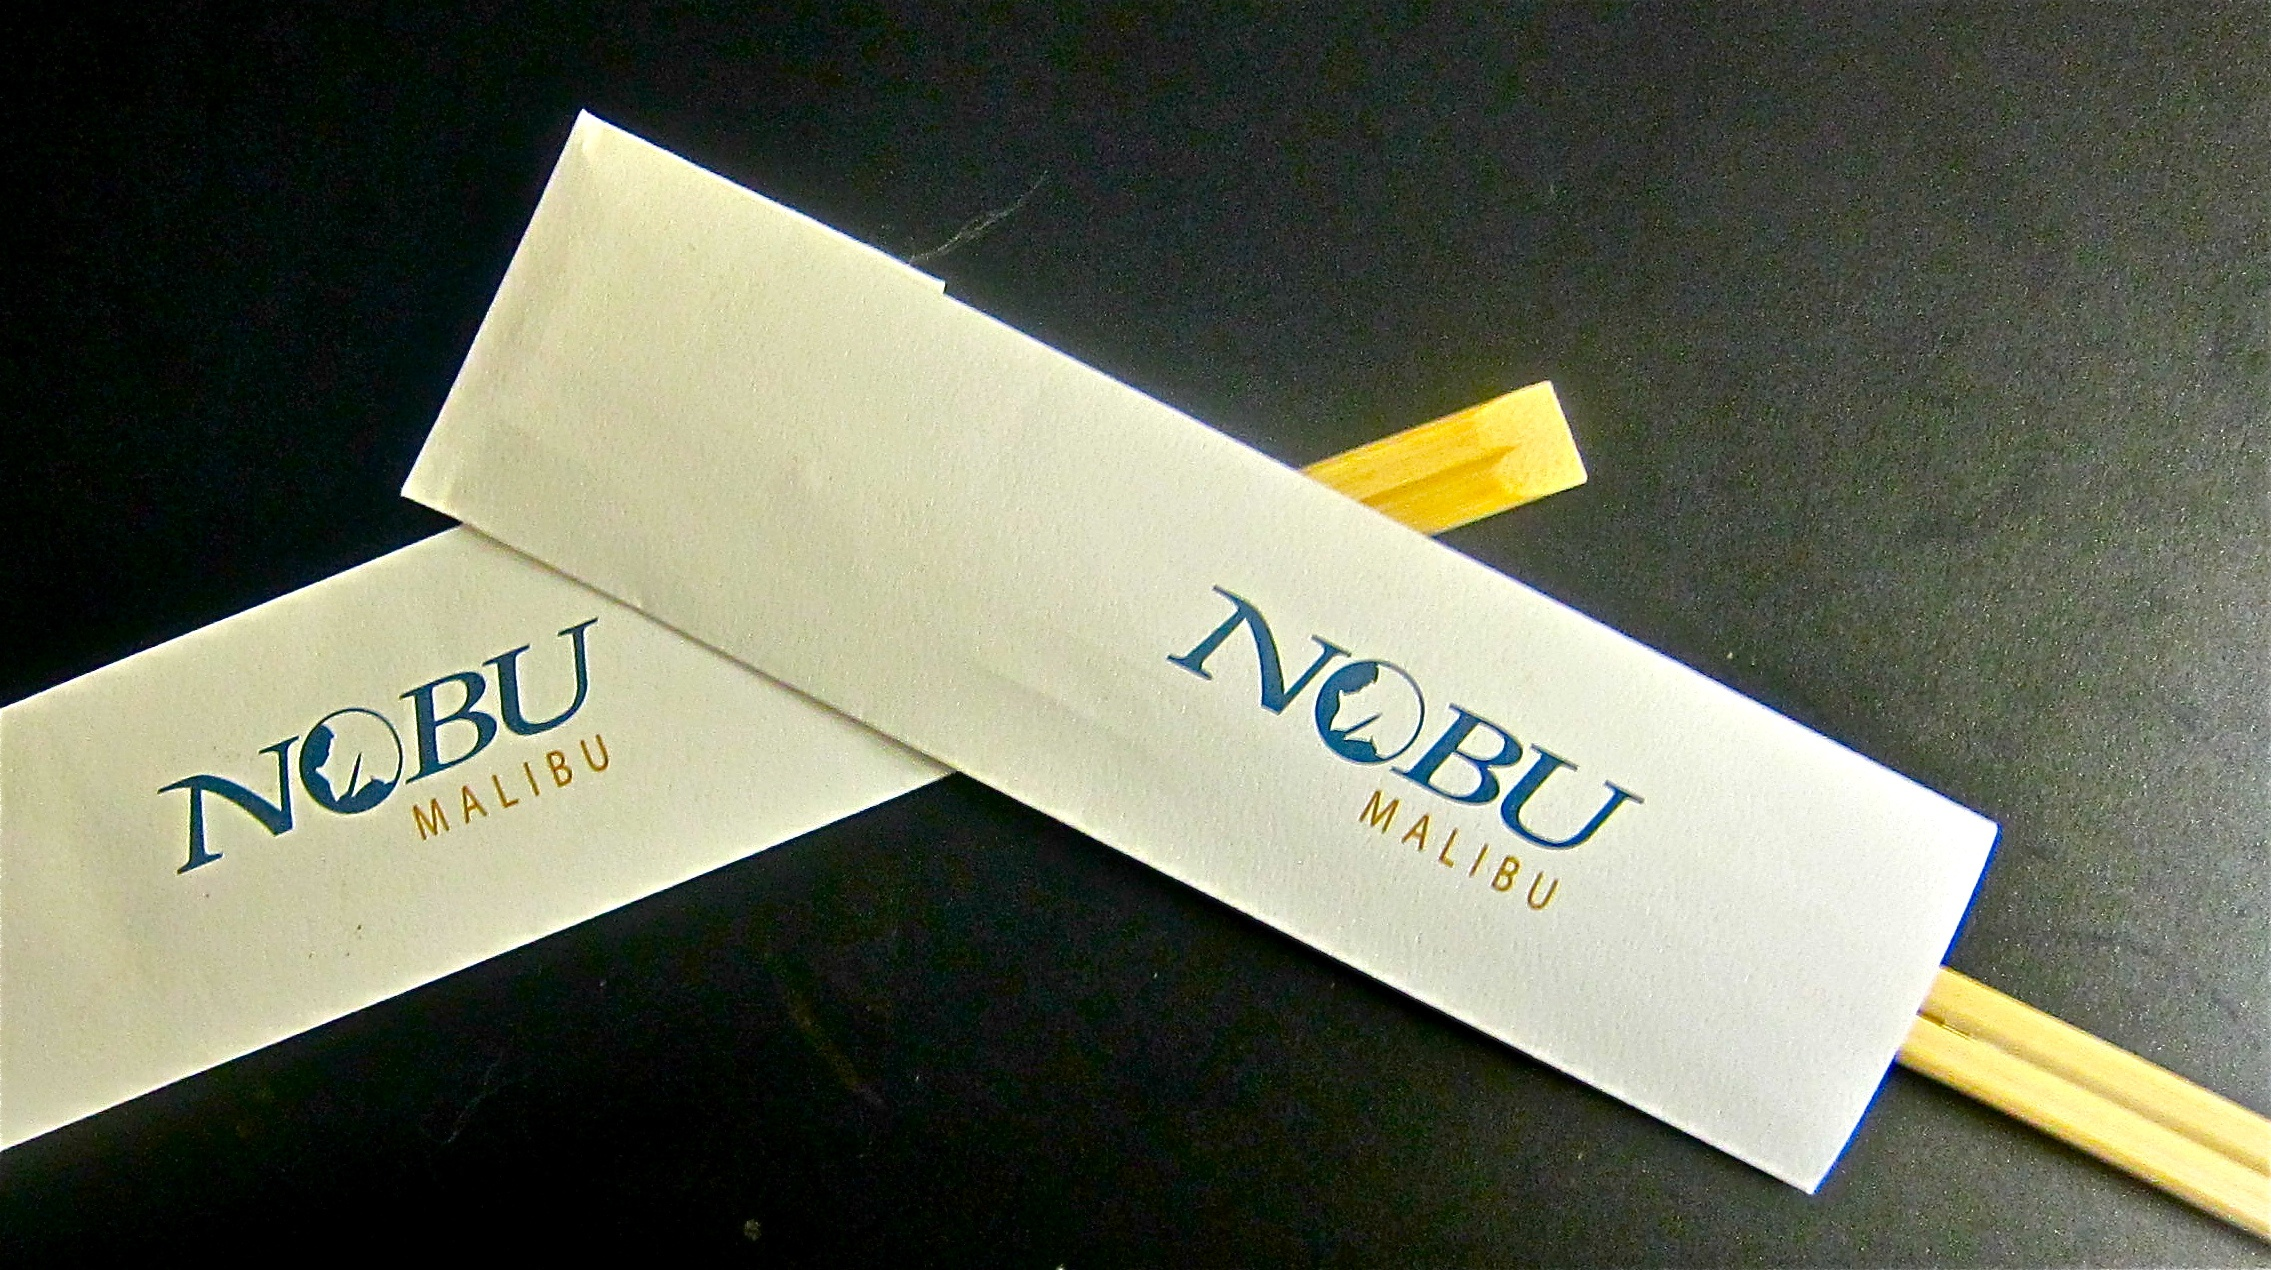 nobu malibu may be hottest most exciting new restaurant